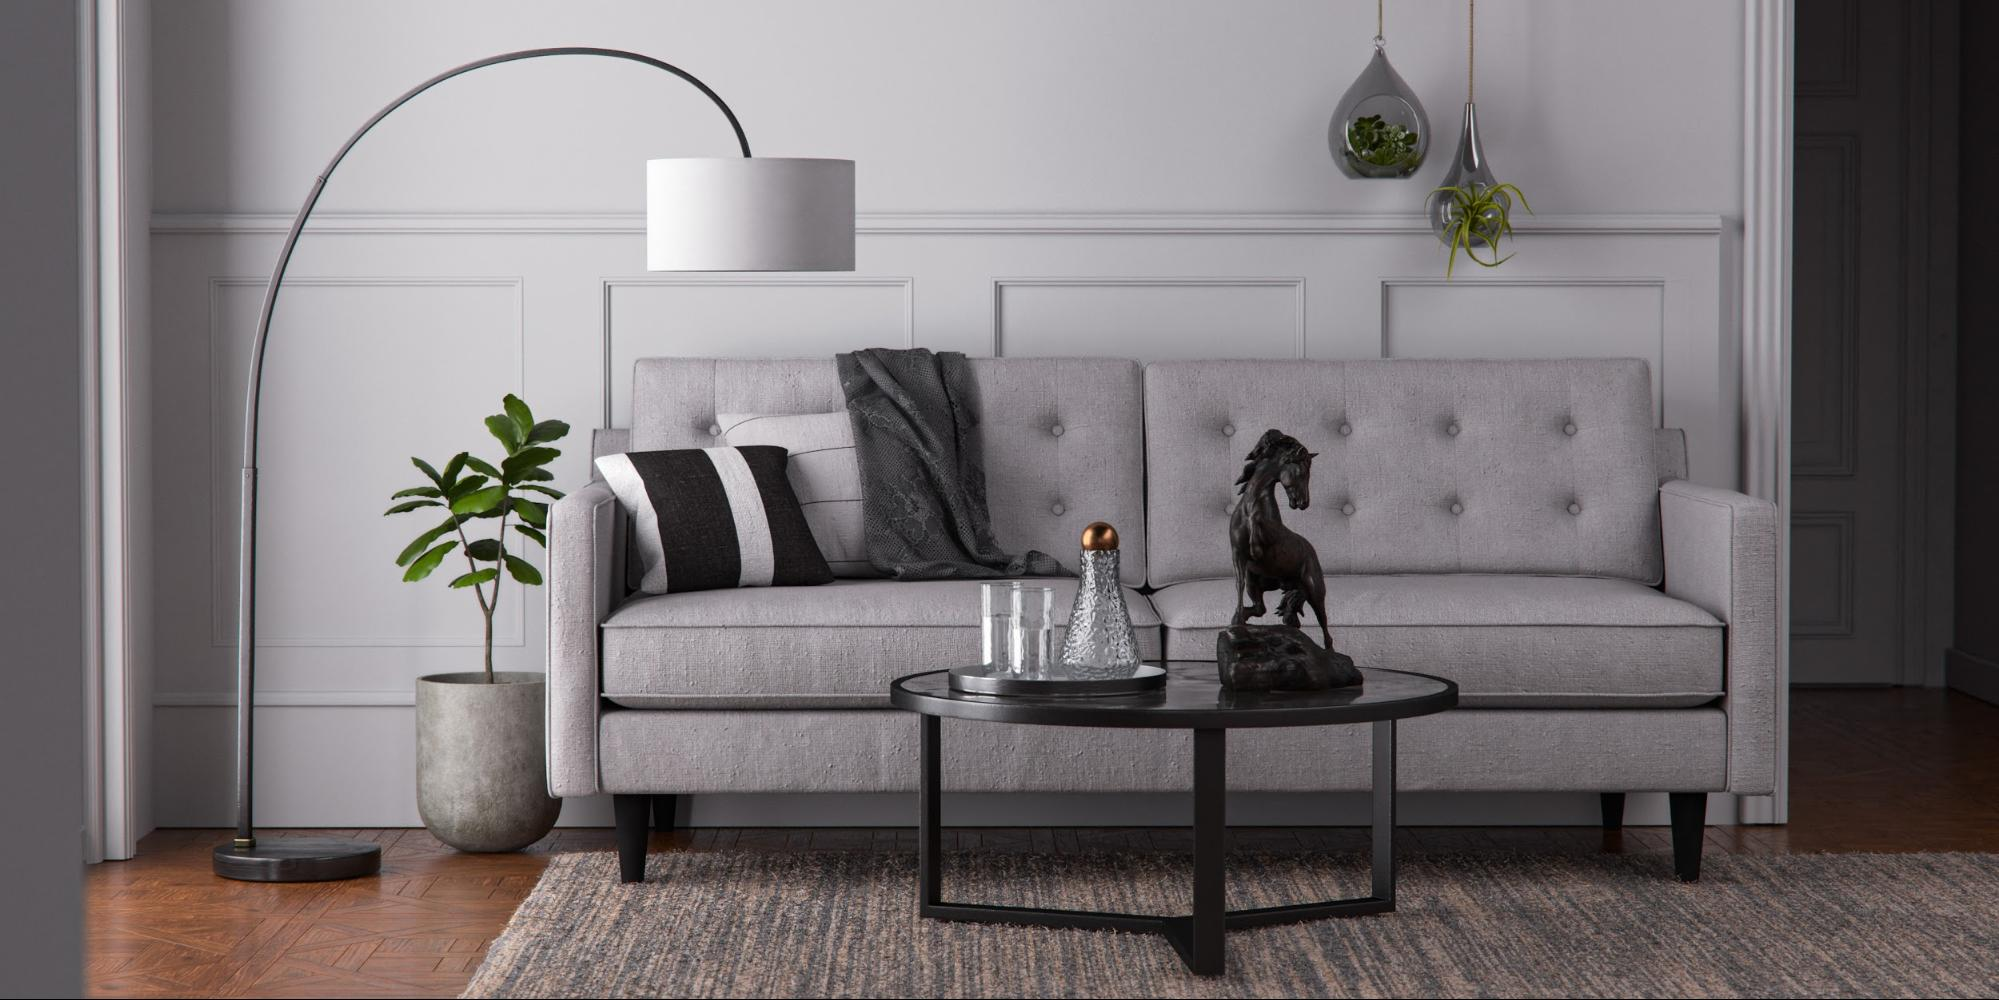 A 3D interior scene of a living room